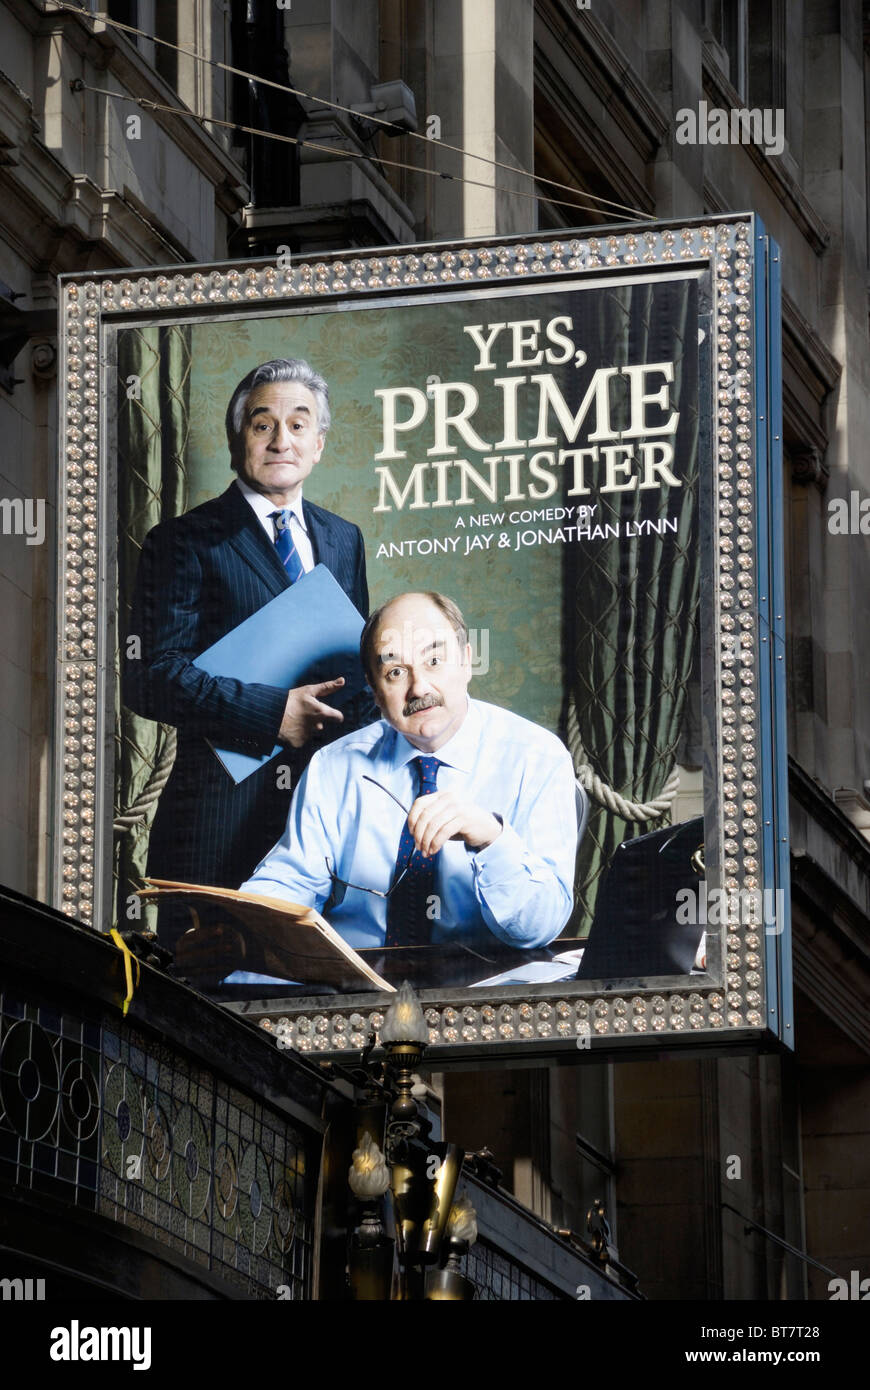 Billboard promoting the London West End stage version of Yes Prime Minister - Stock Image